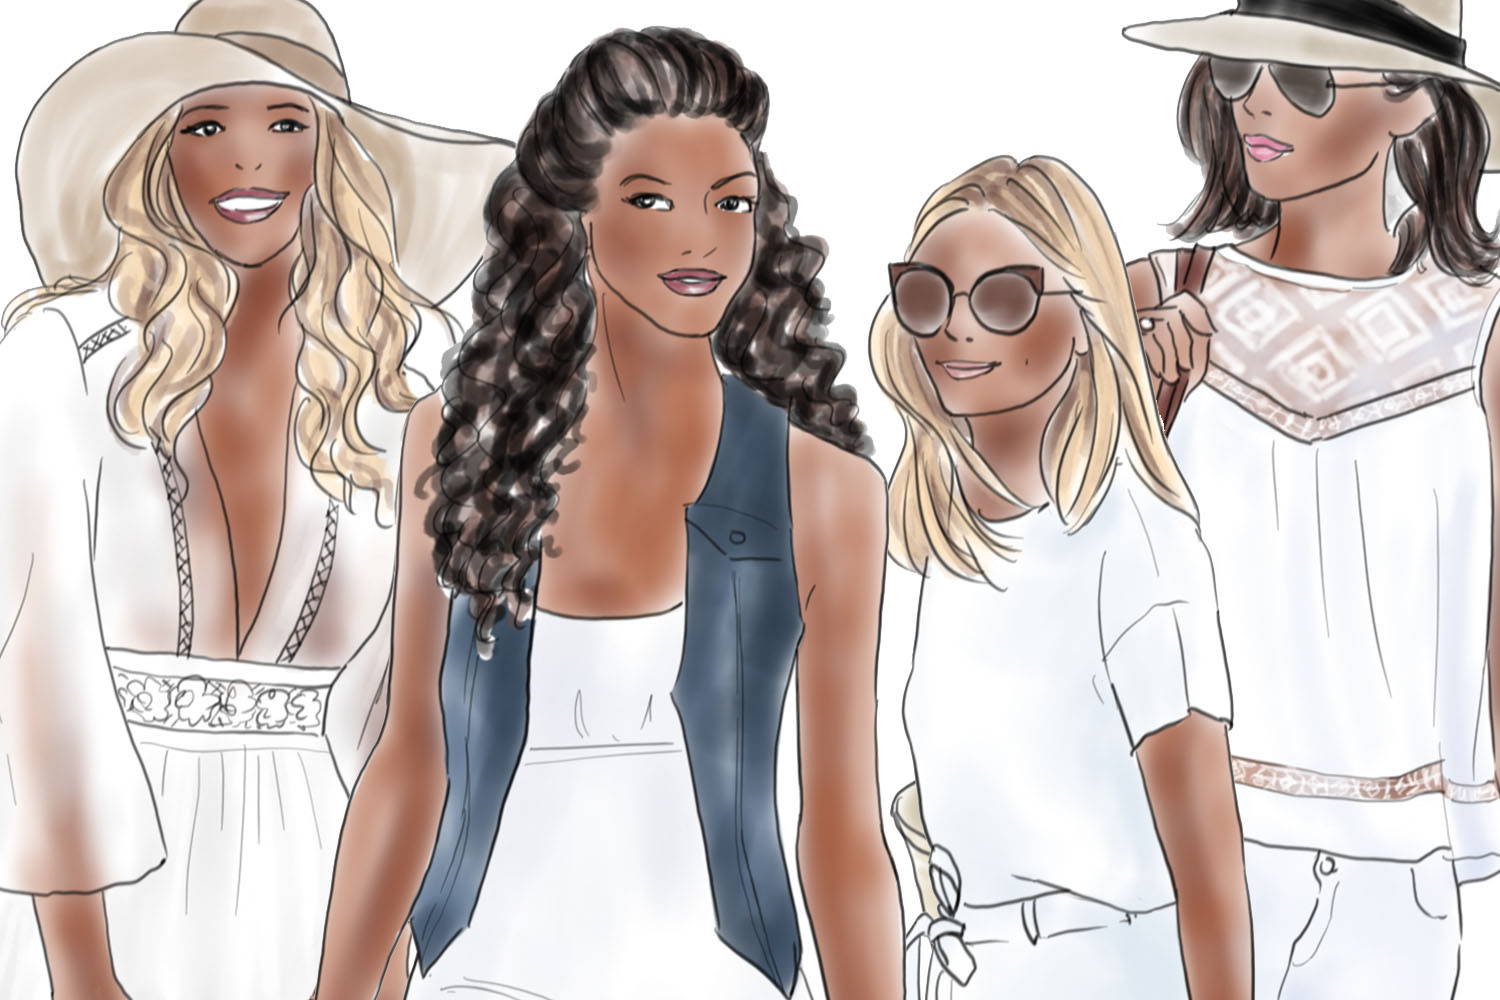 Fashion illustration clipart - Girls in summer white - Dark skin example image 3